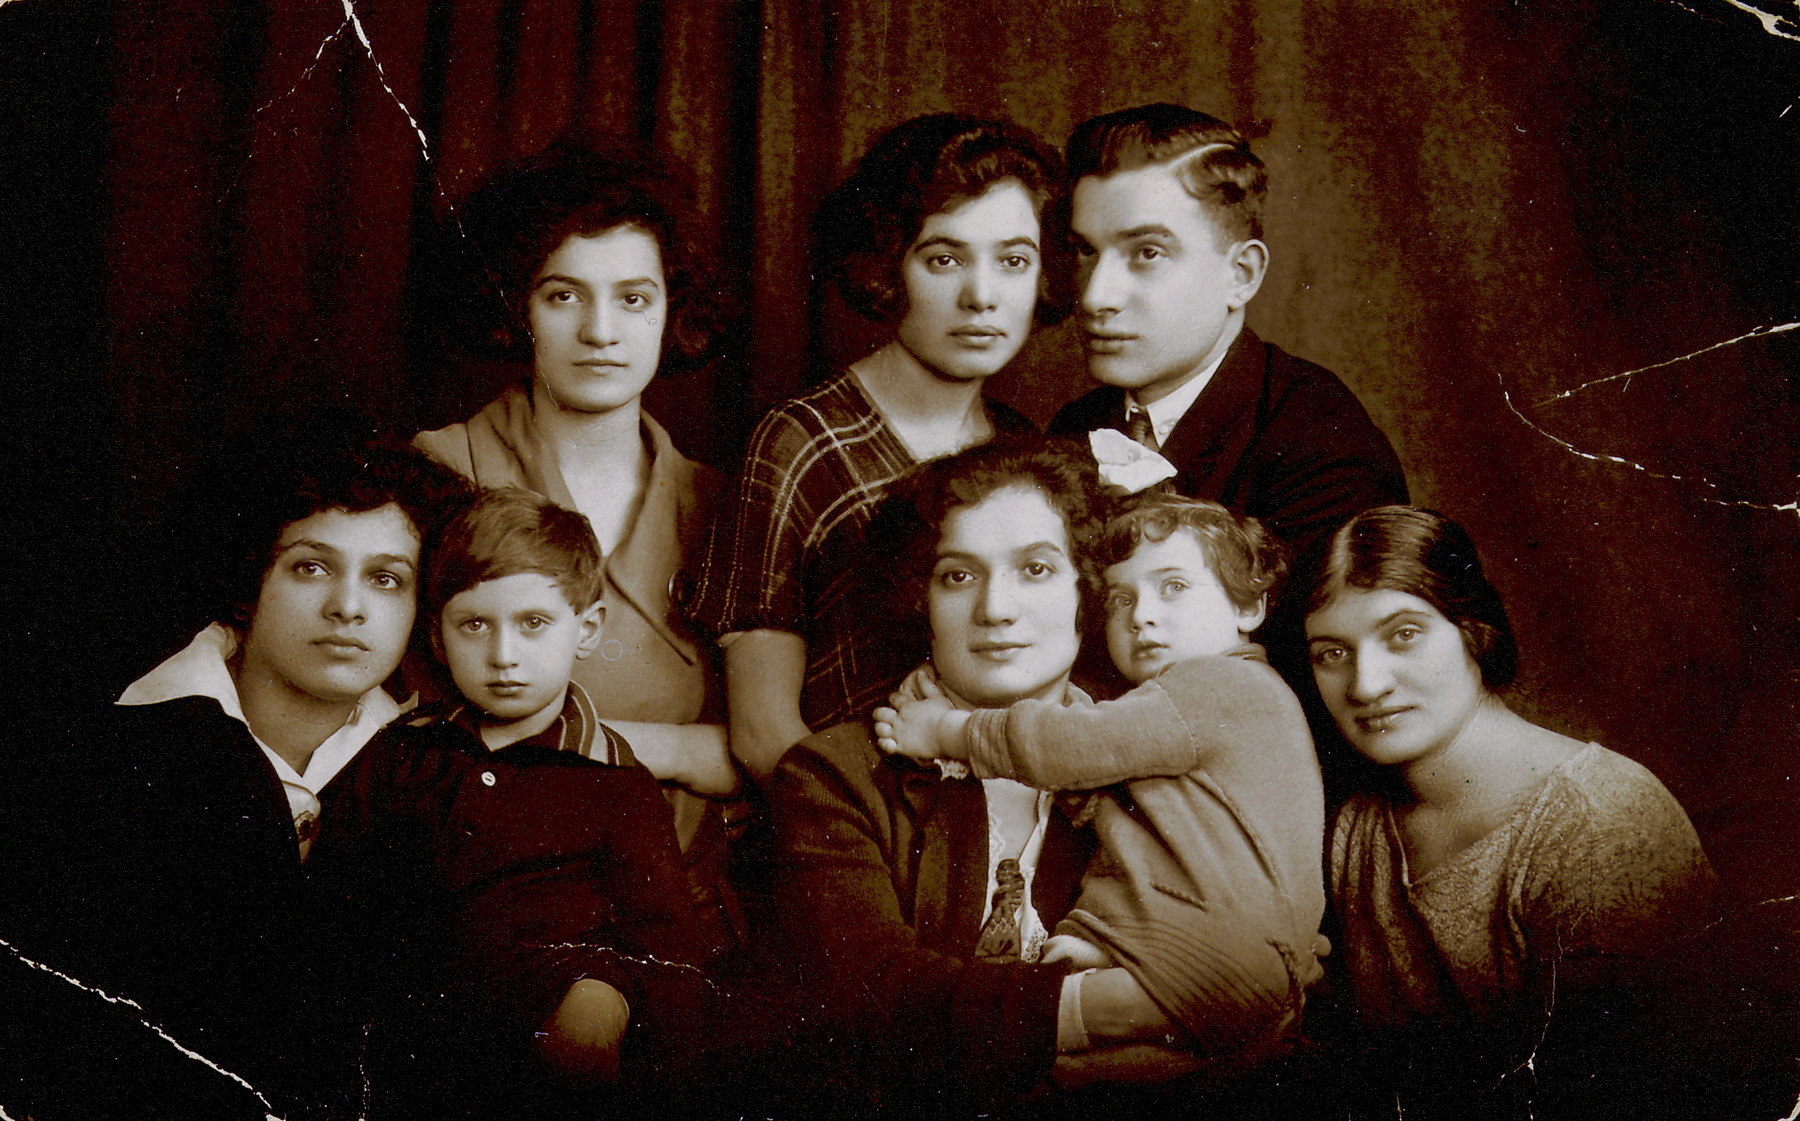 Sonia Czemielinski Nowogrodzka with her siblings and their children on the occasion of her sister Anita leaving for America.  First row from right: Sonia Czemielinska Nowogrodzka, Cyla Czemielinska Jezior holding her daughter Basia, Markus Nowogrodzki, Chaja Czemielinska.  Second row from right: Nissan Czemielinski, Anita Czemielinska, and Esther Czemielinska.